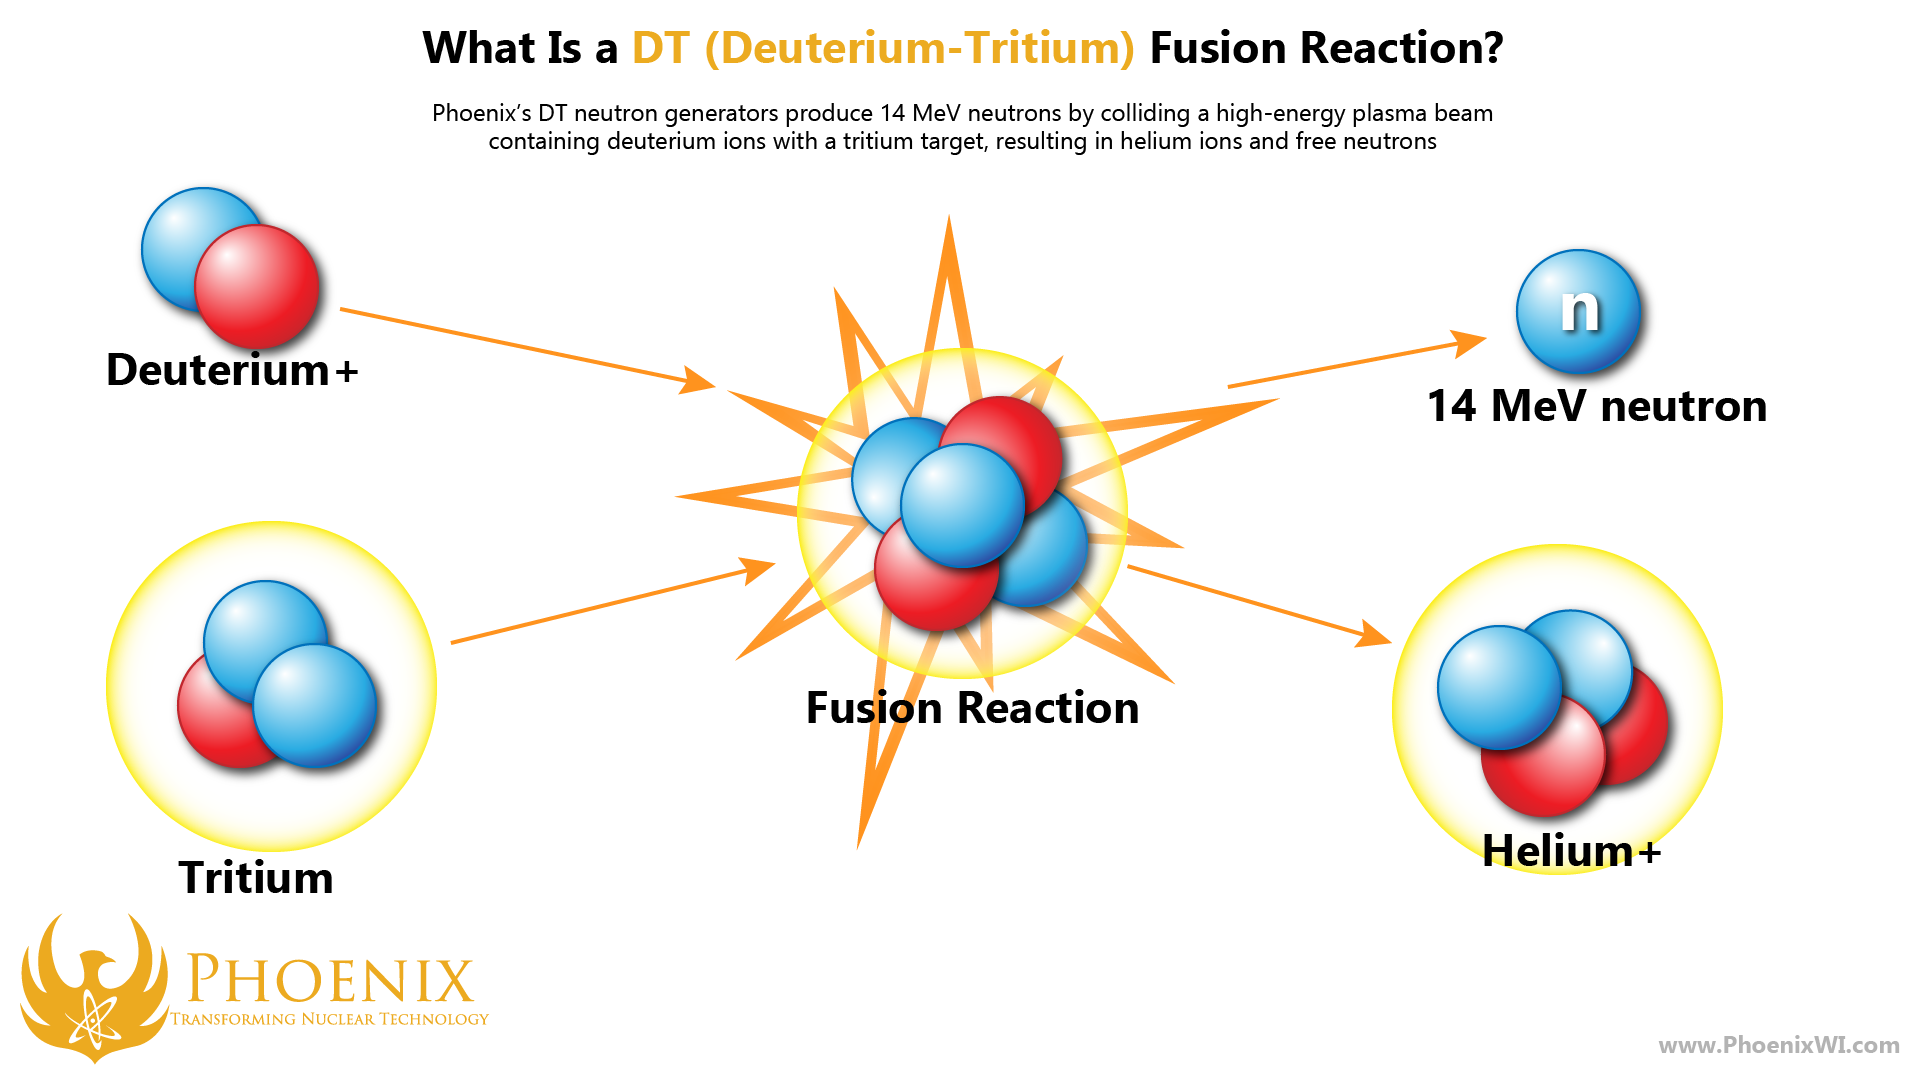 Phoenix's DT fusion reaction